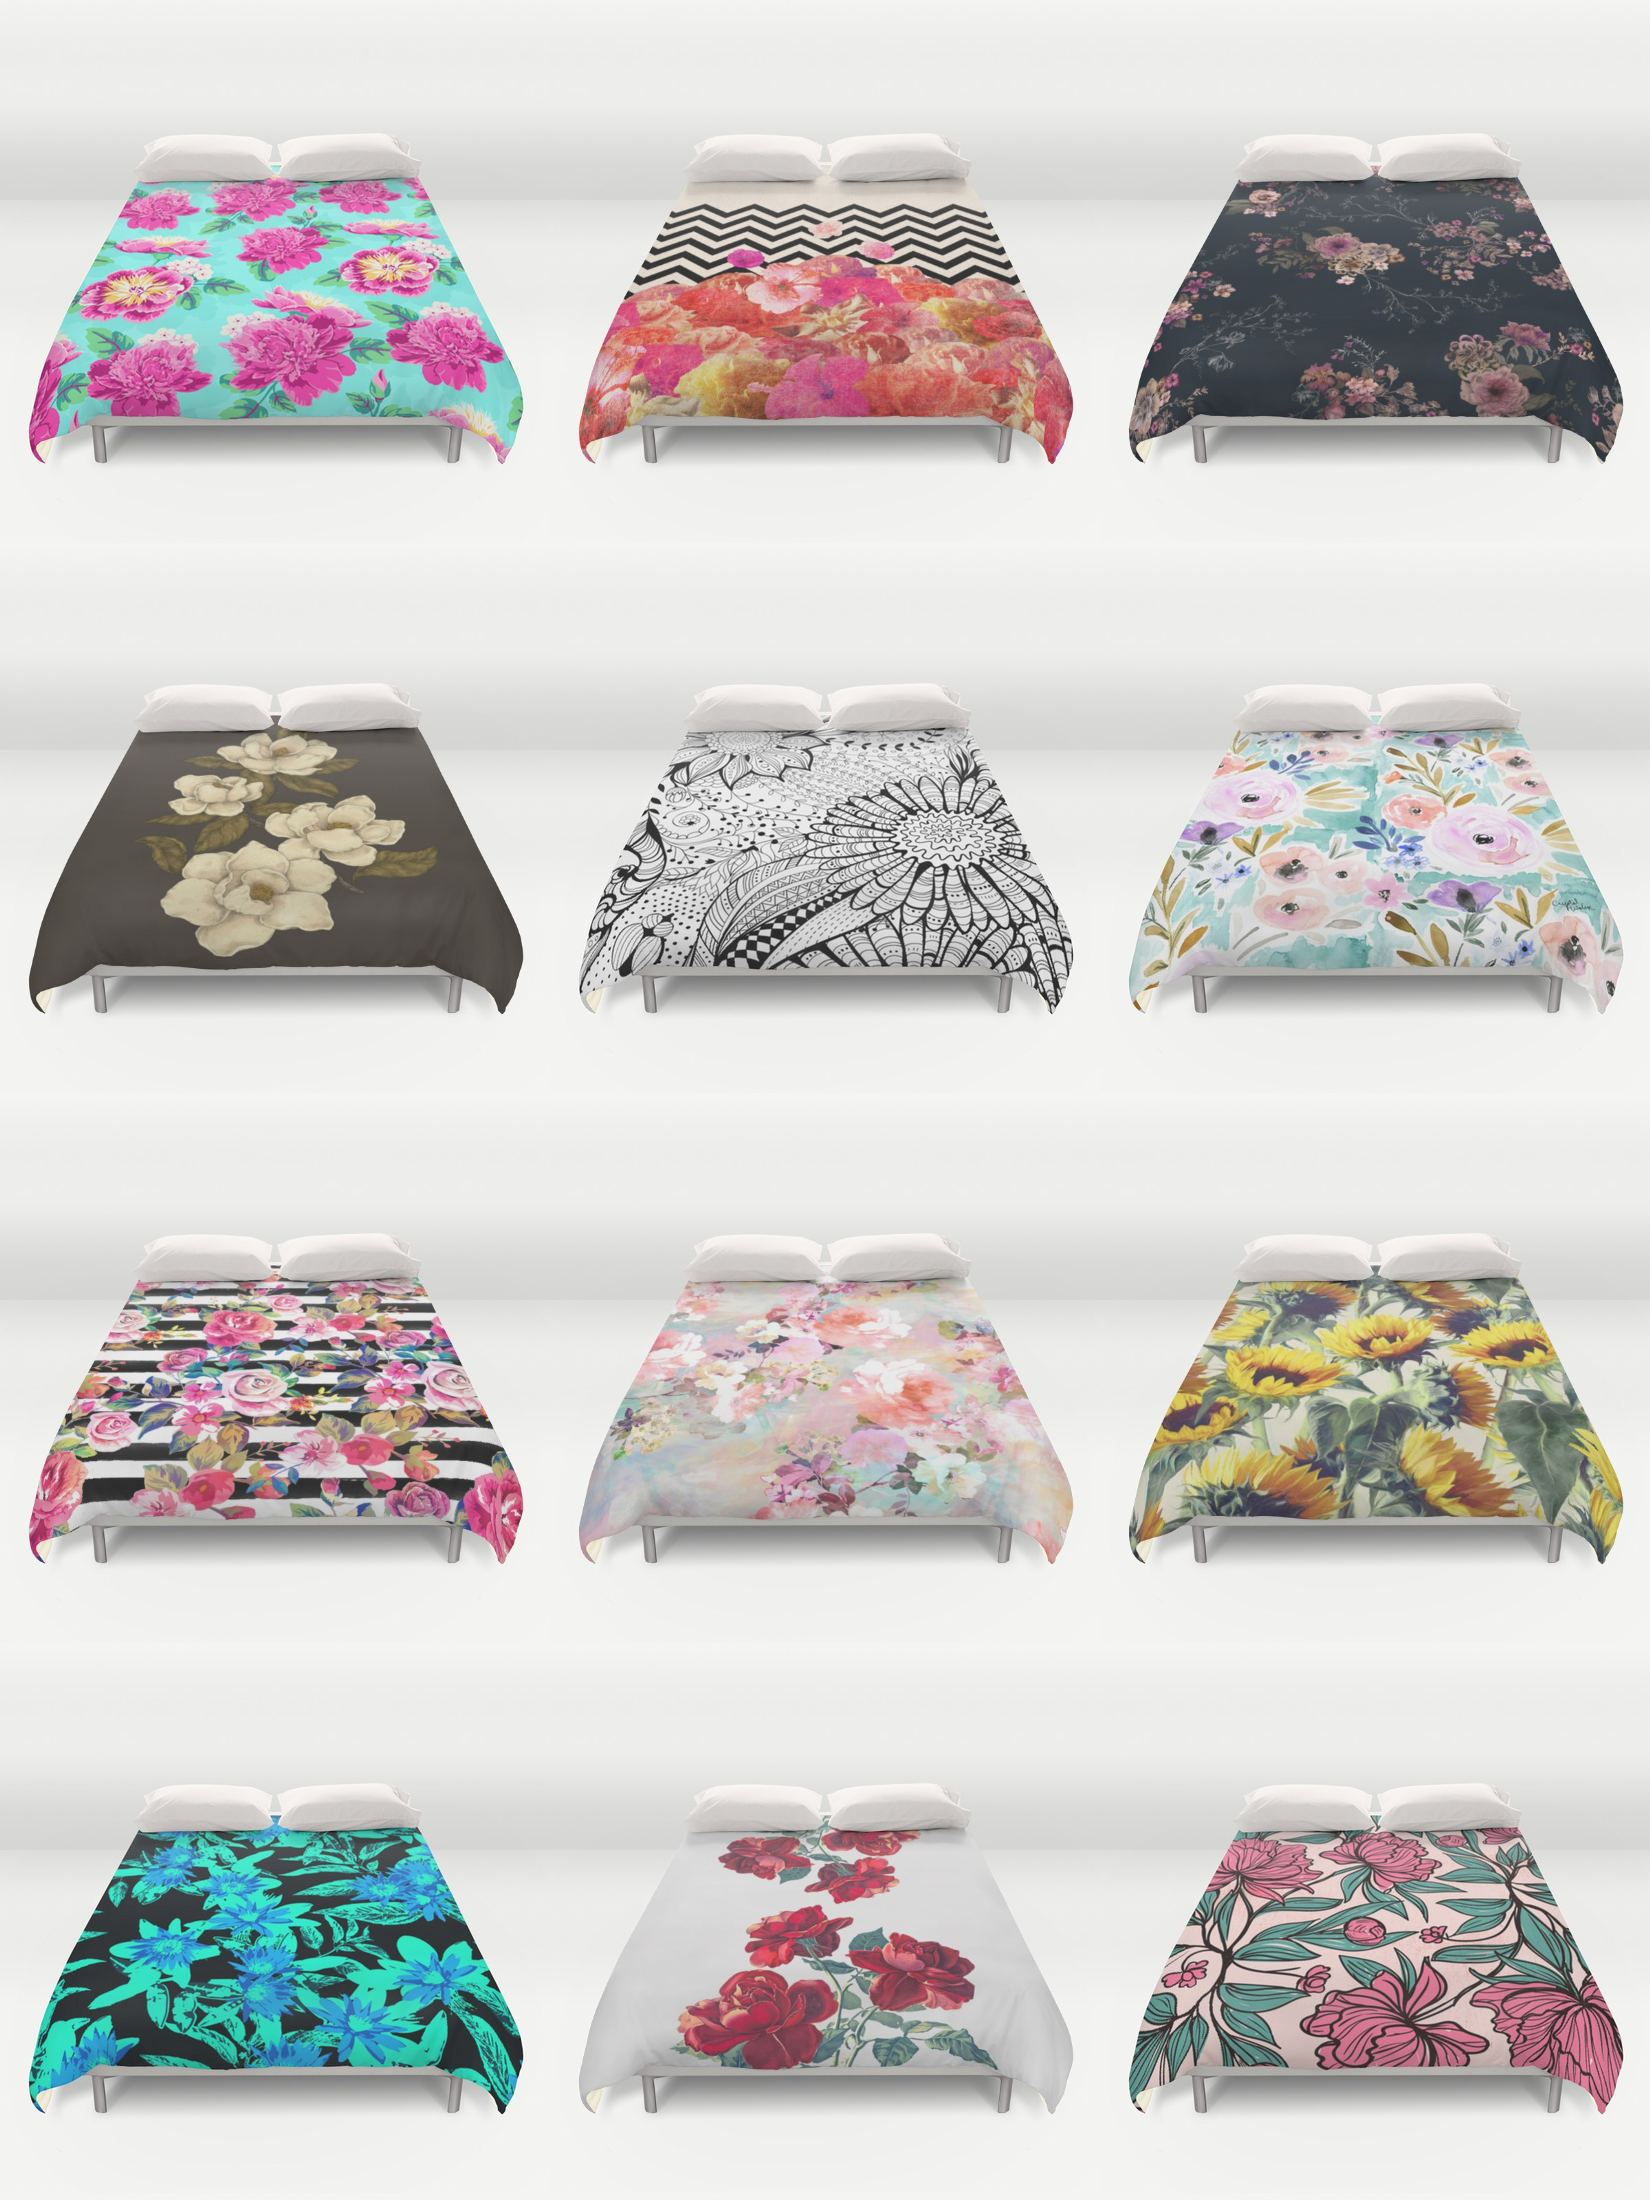 Shop unique and original duvet covers on Society6